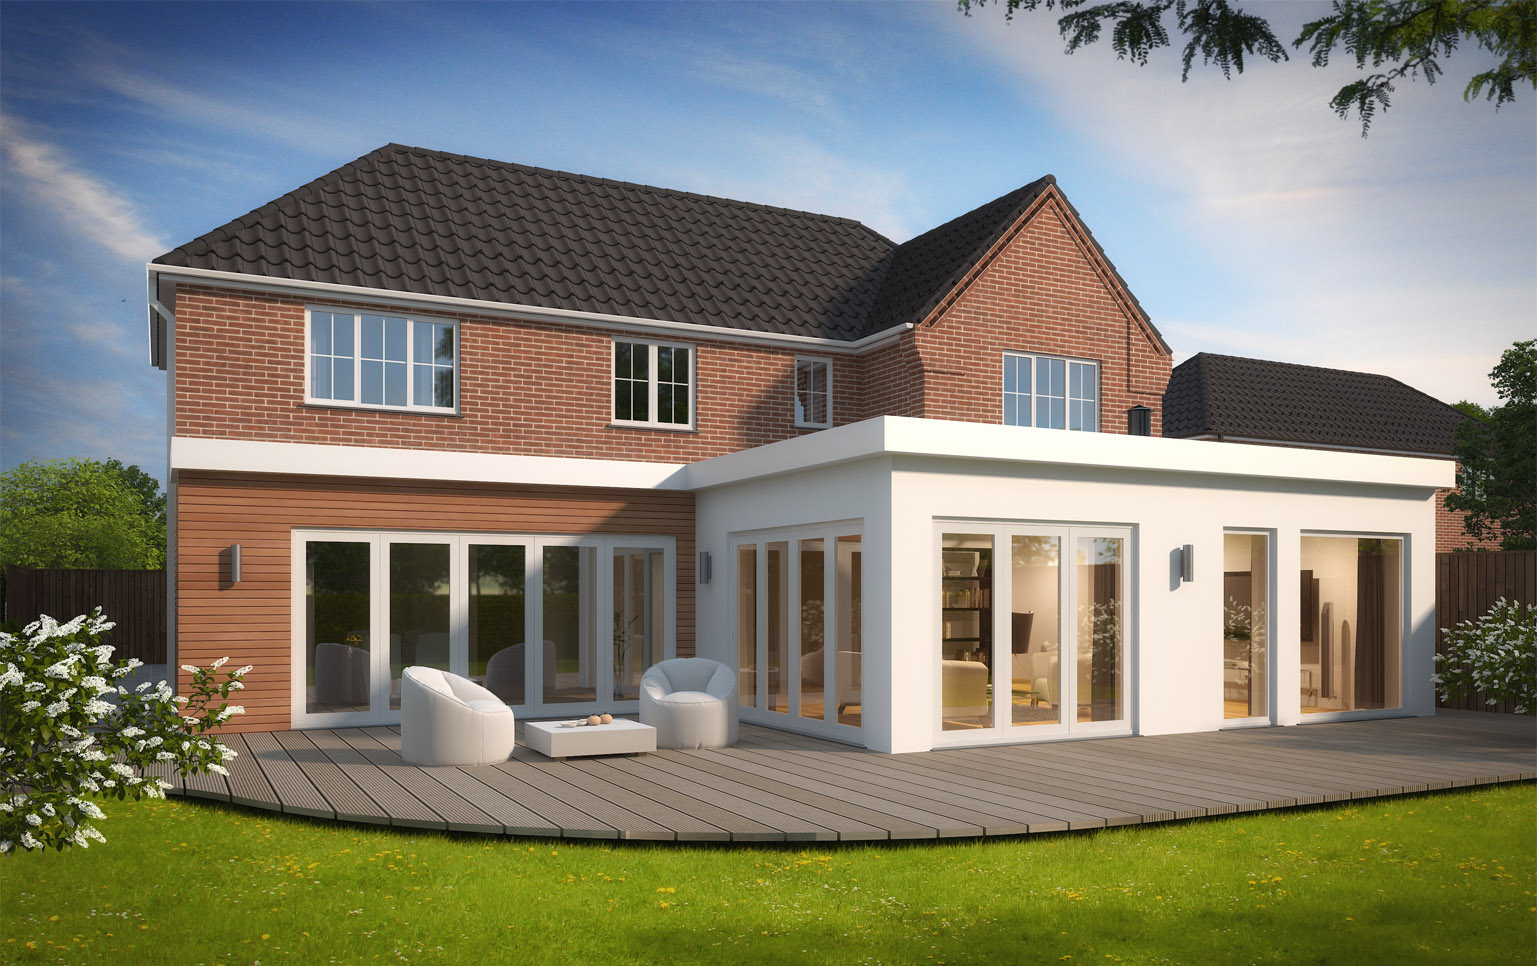 Fancy Dining Room Bespoke Rear Extension Lincoln